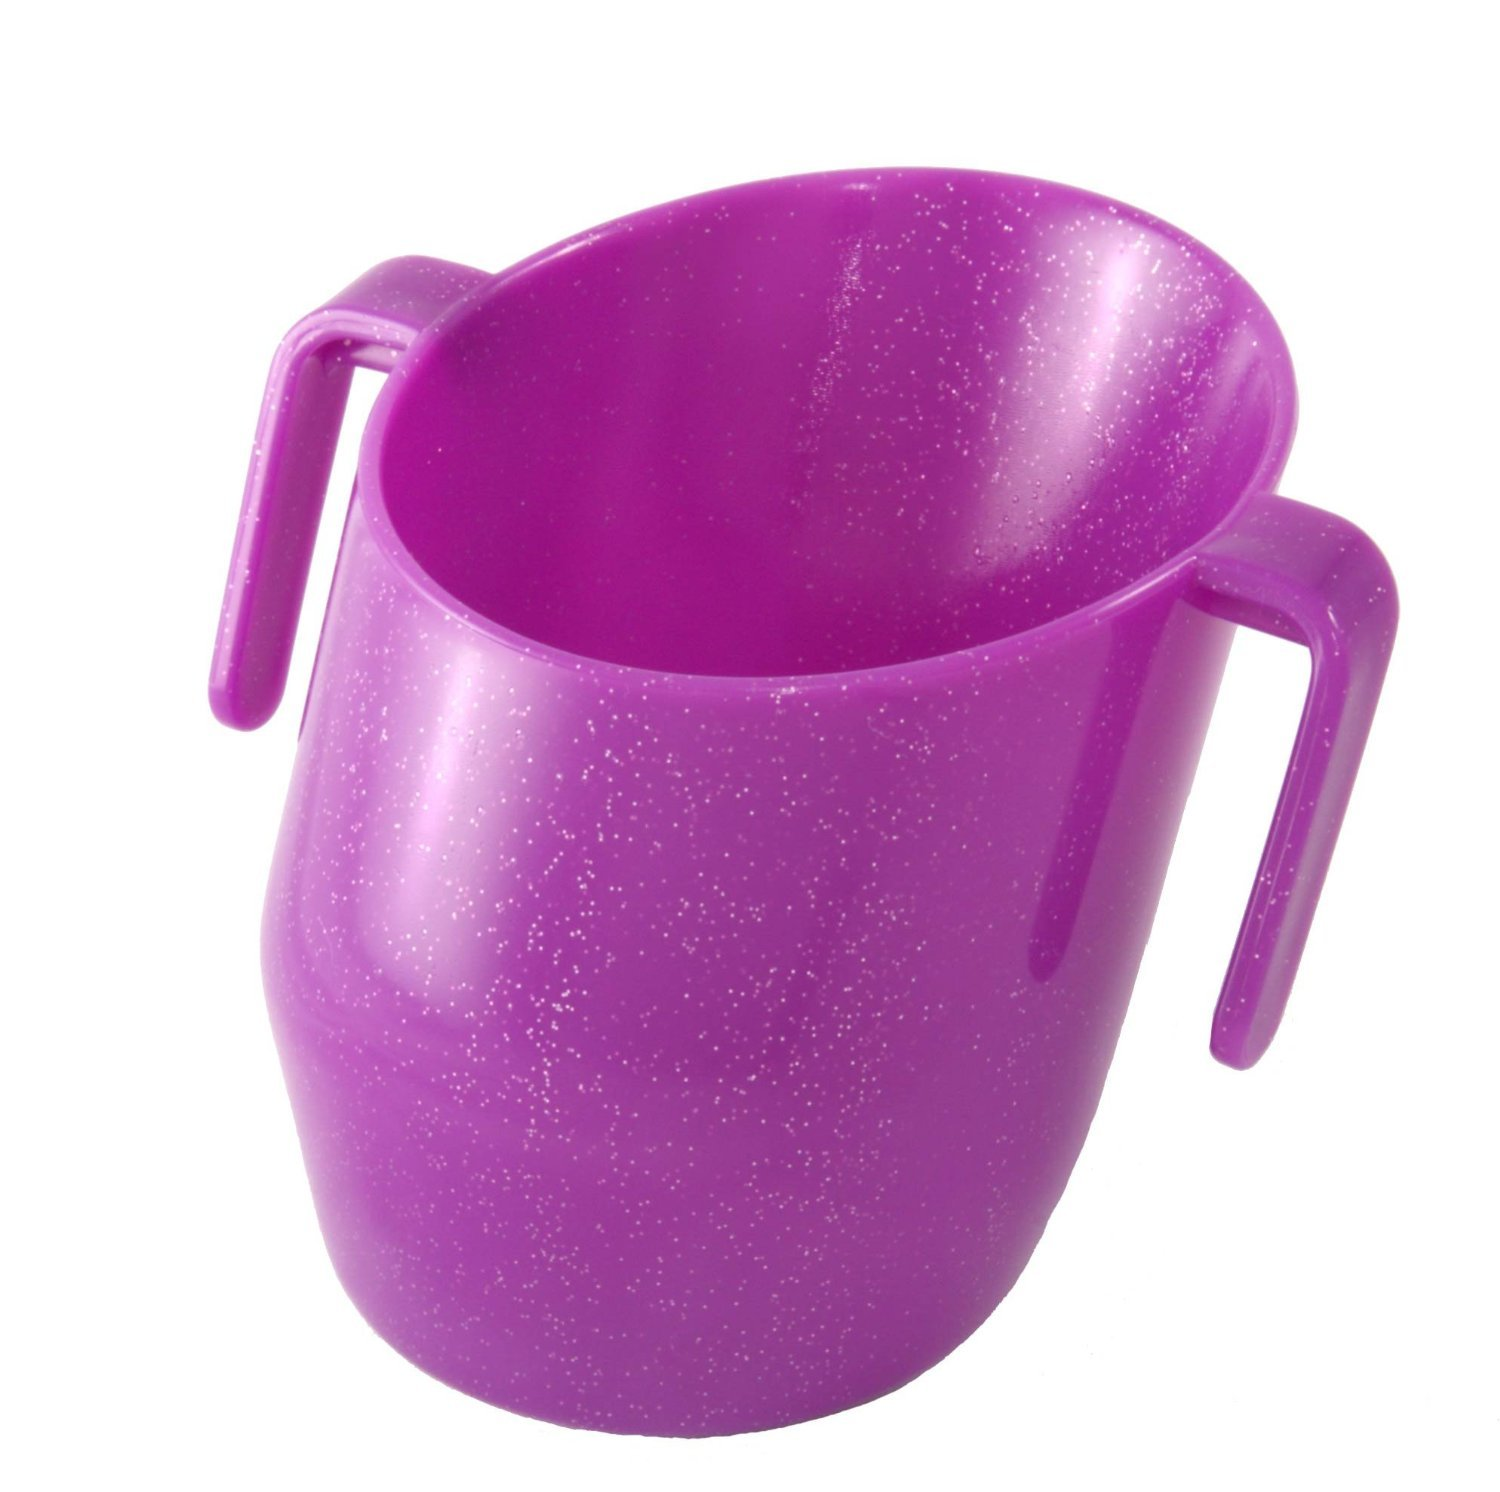 Doidy Cup - Purple Sparkles Baby Price